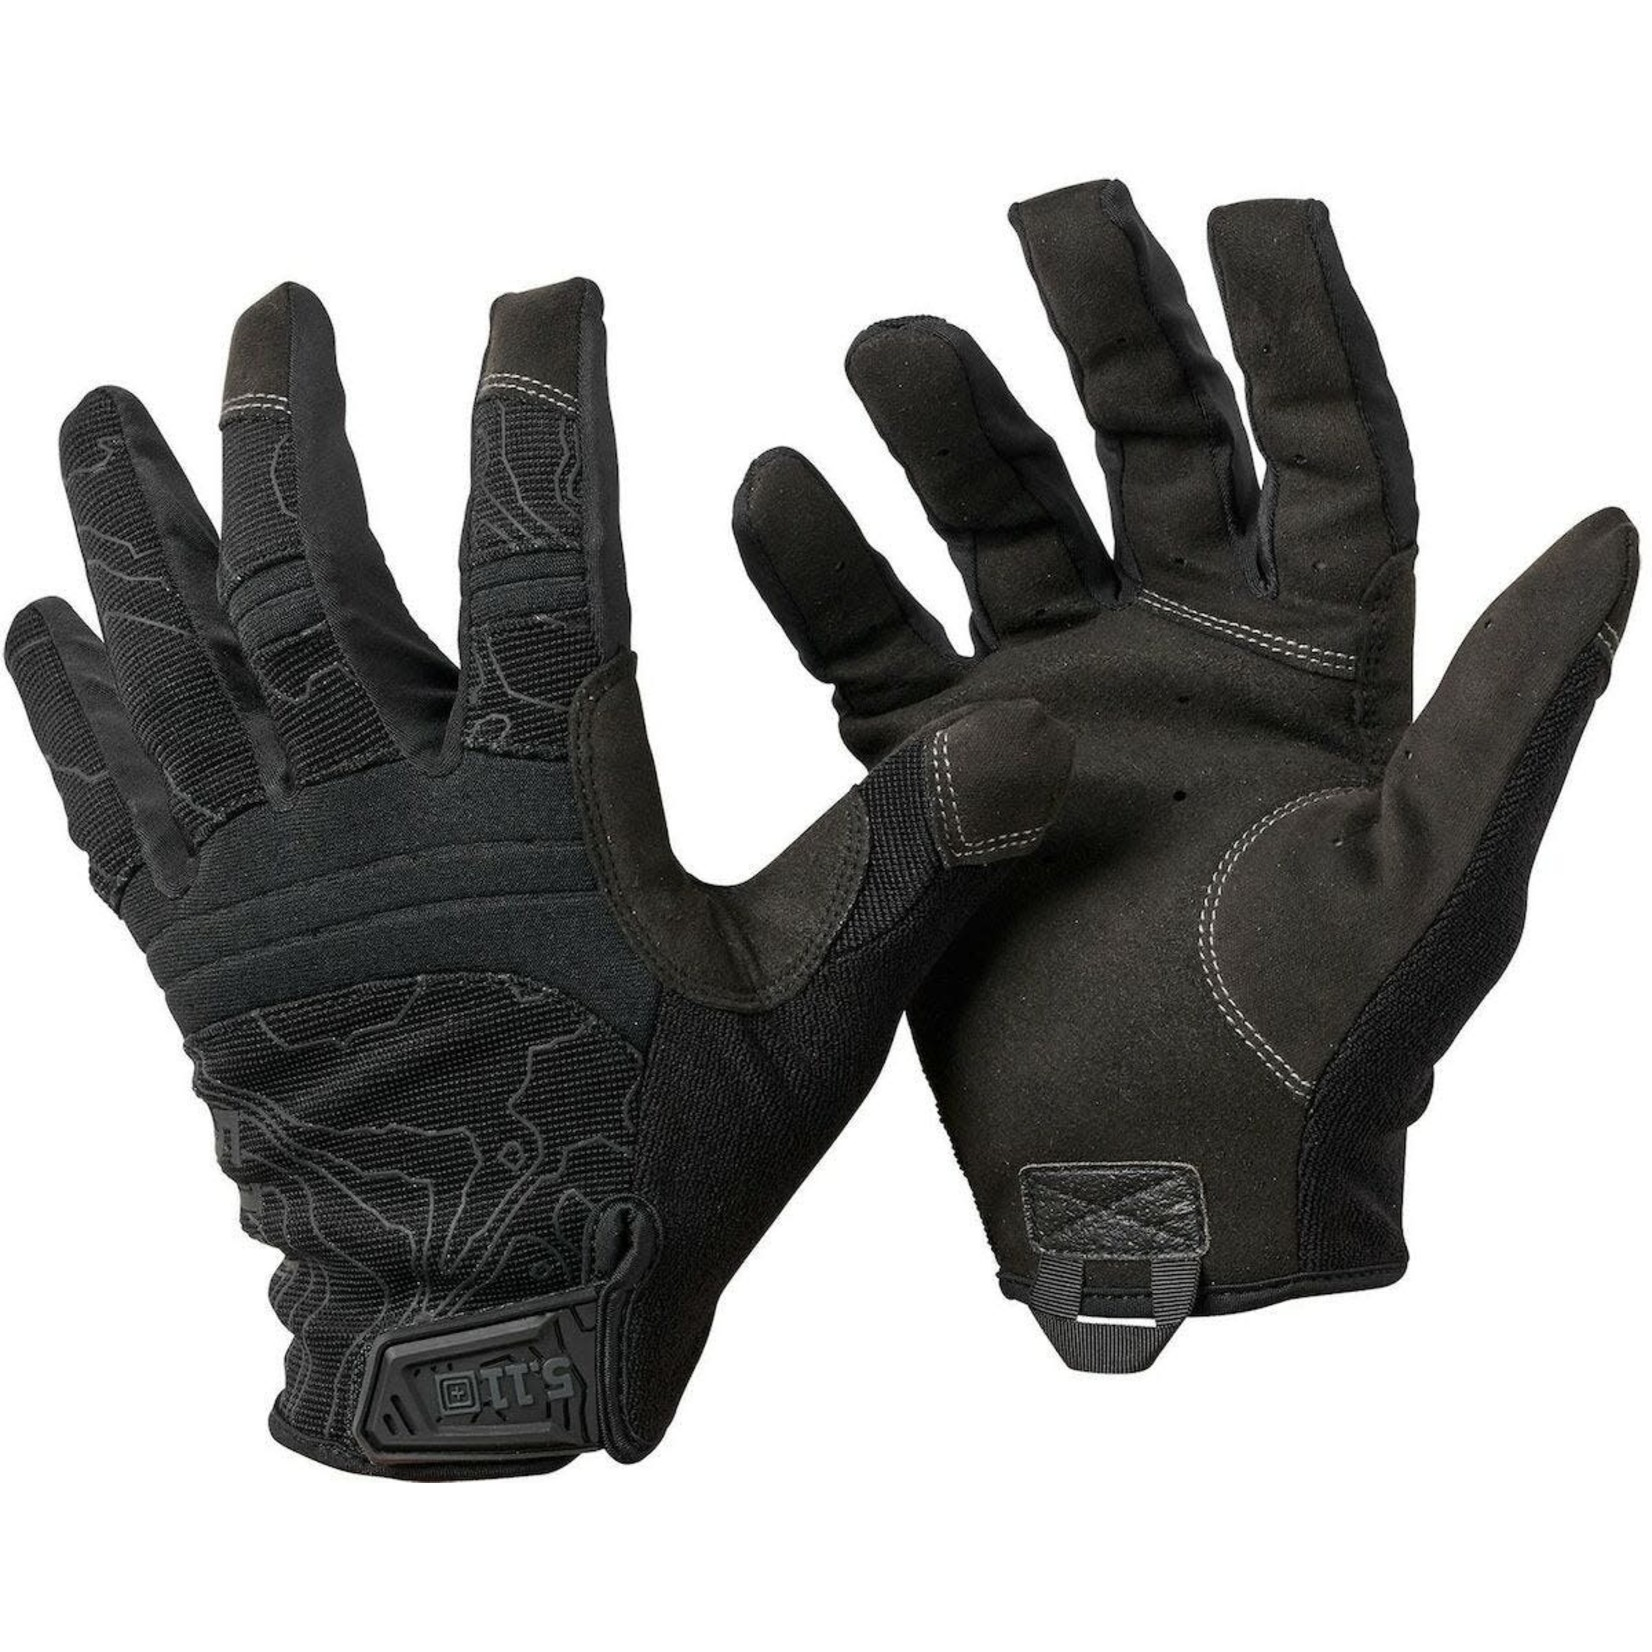 5.11 Tactical 5.11 Competition Shooting Glove